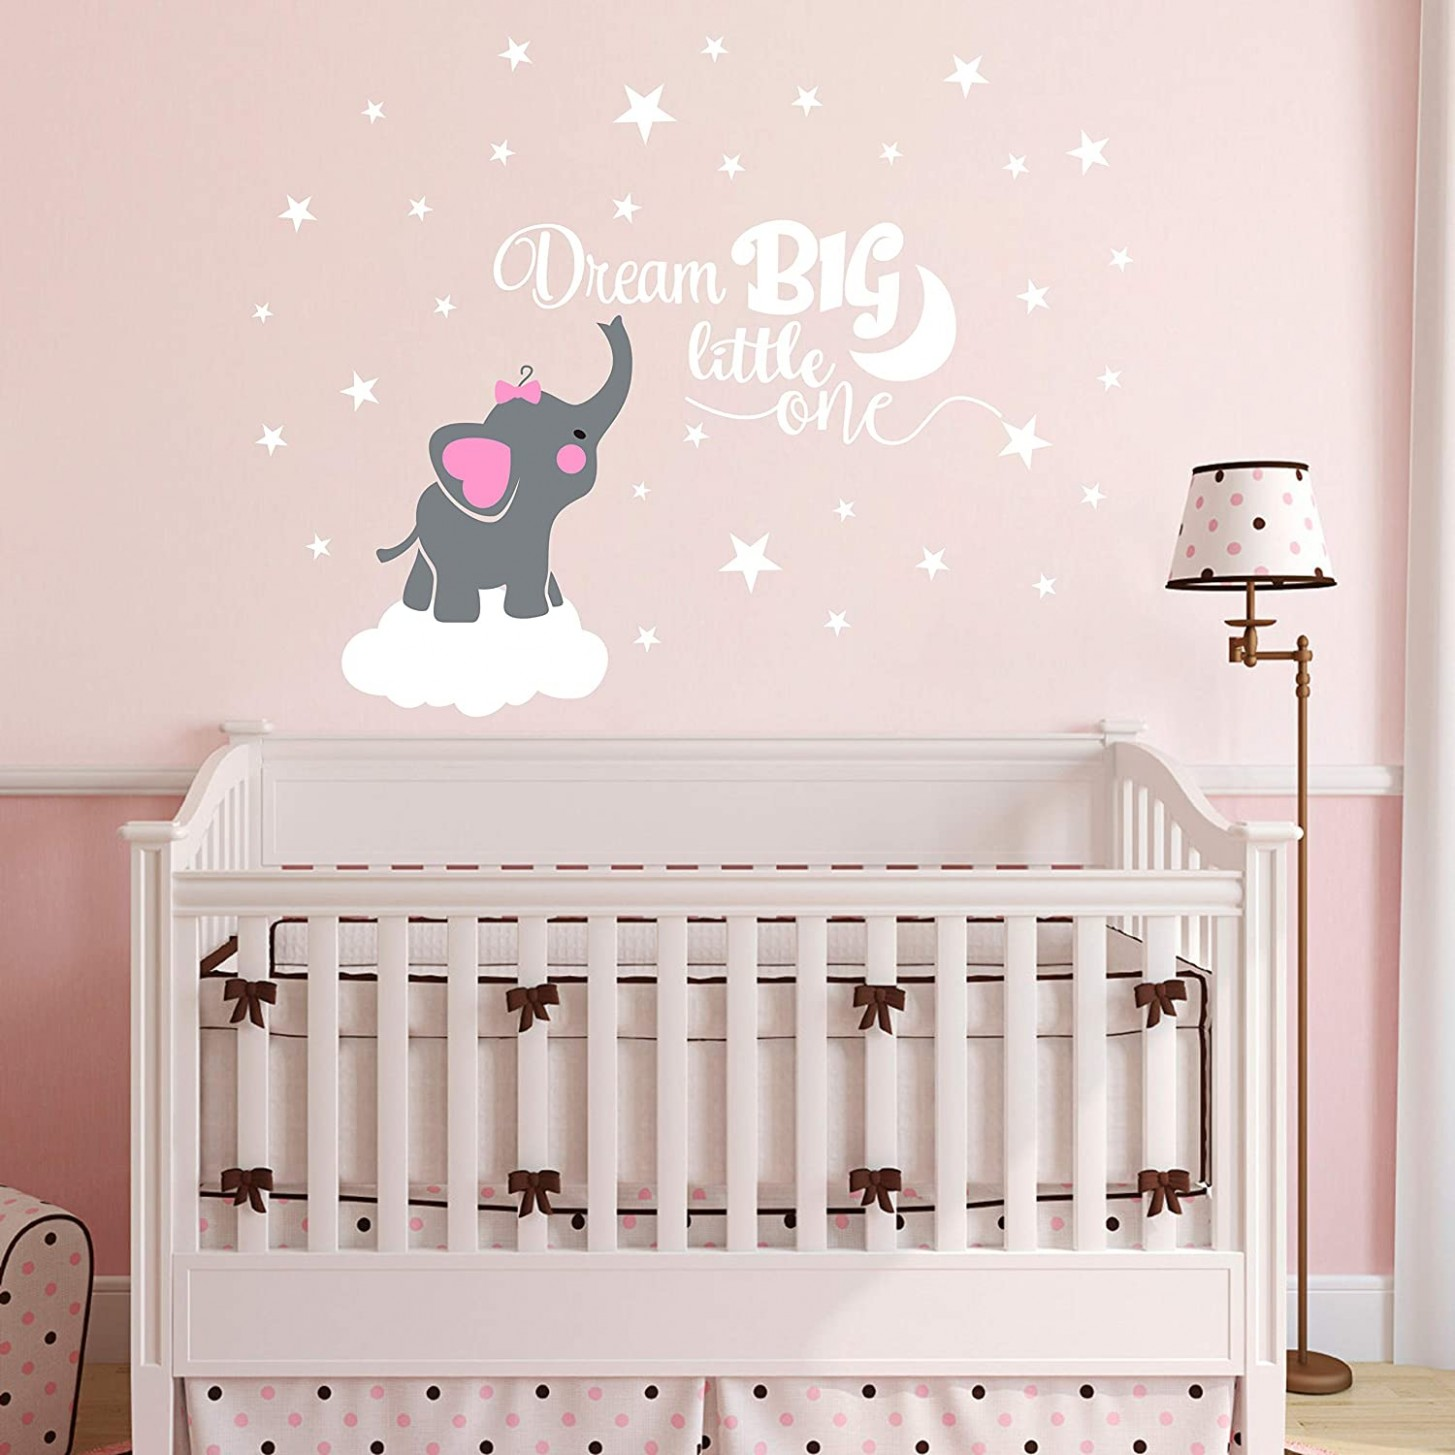 Dream Big Little One Elephant Wall Decal, Quote Wall Stickers, Baby Room  Wall Decor, Vinyl Wall Decals for Children Baby Kids Boy Girl Bedroom  Nursery  - Baby Room Decals